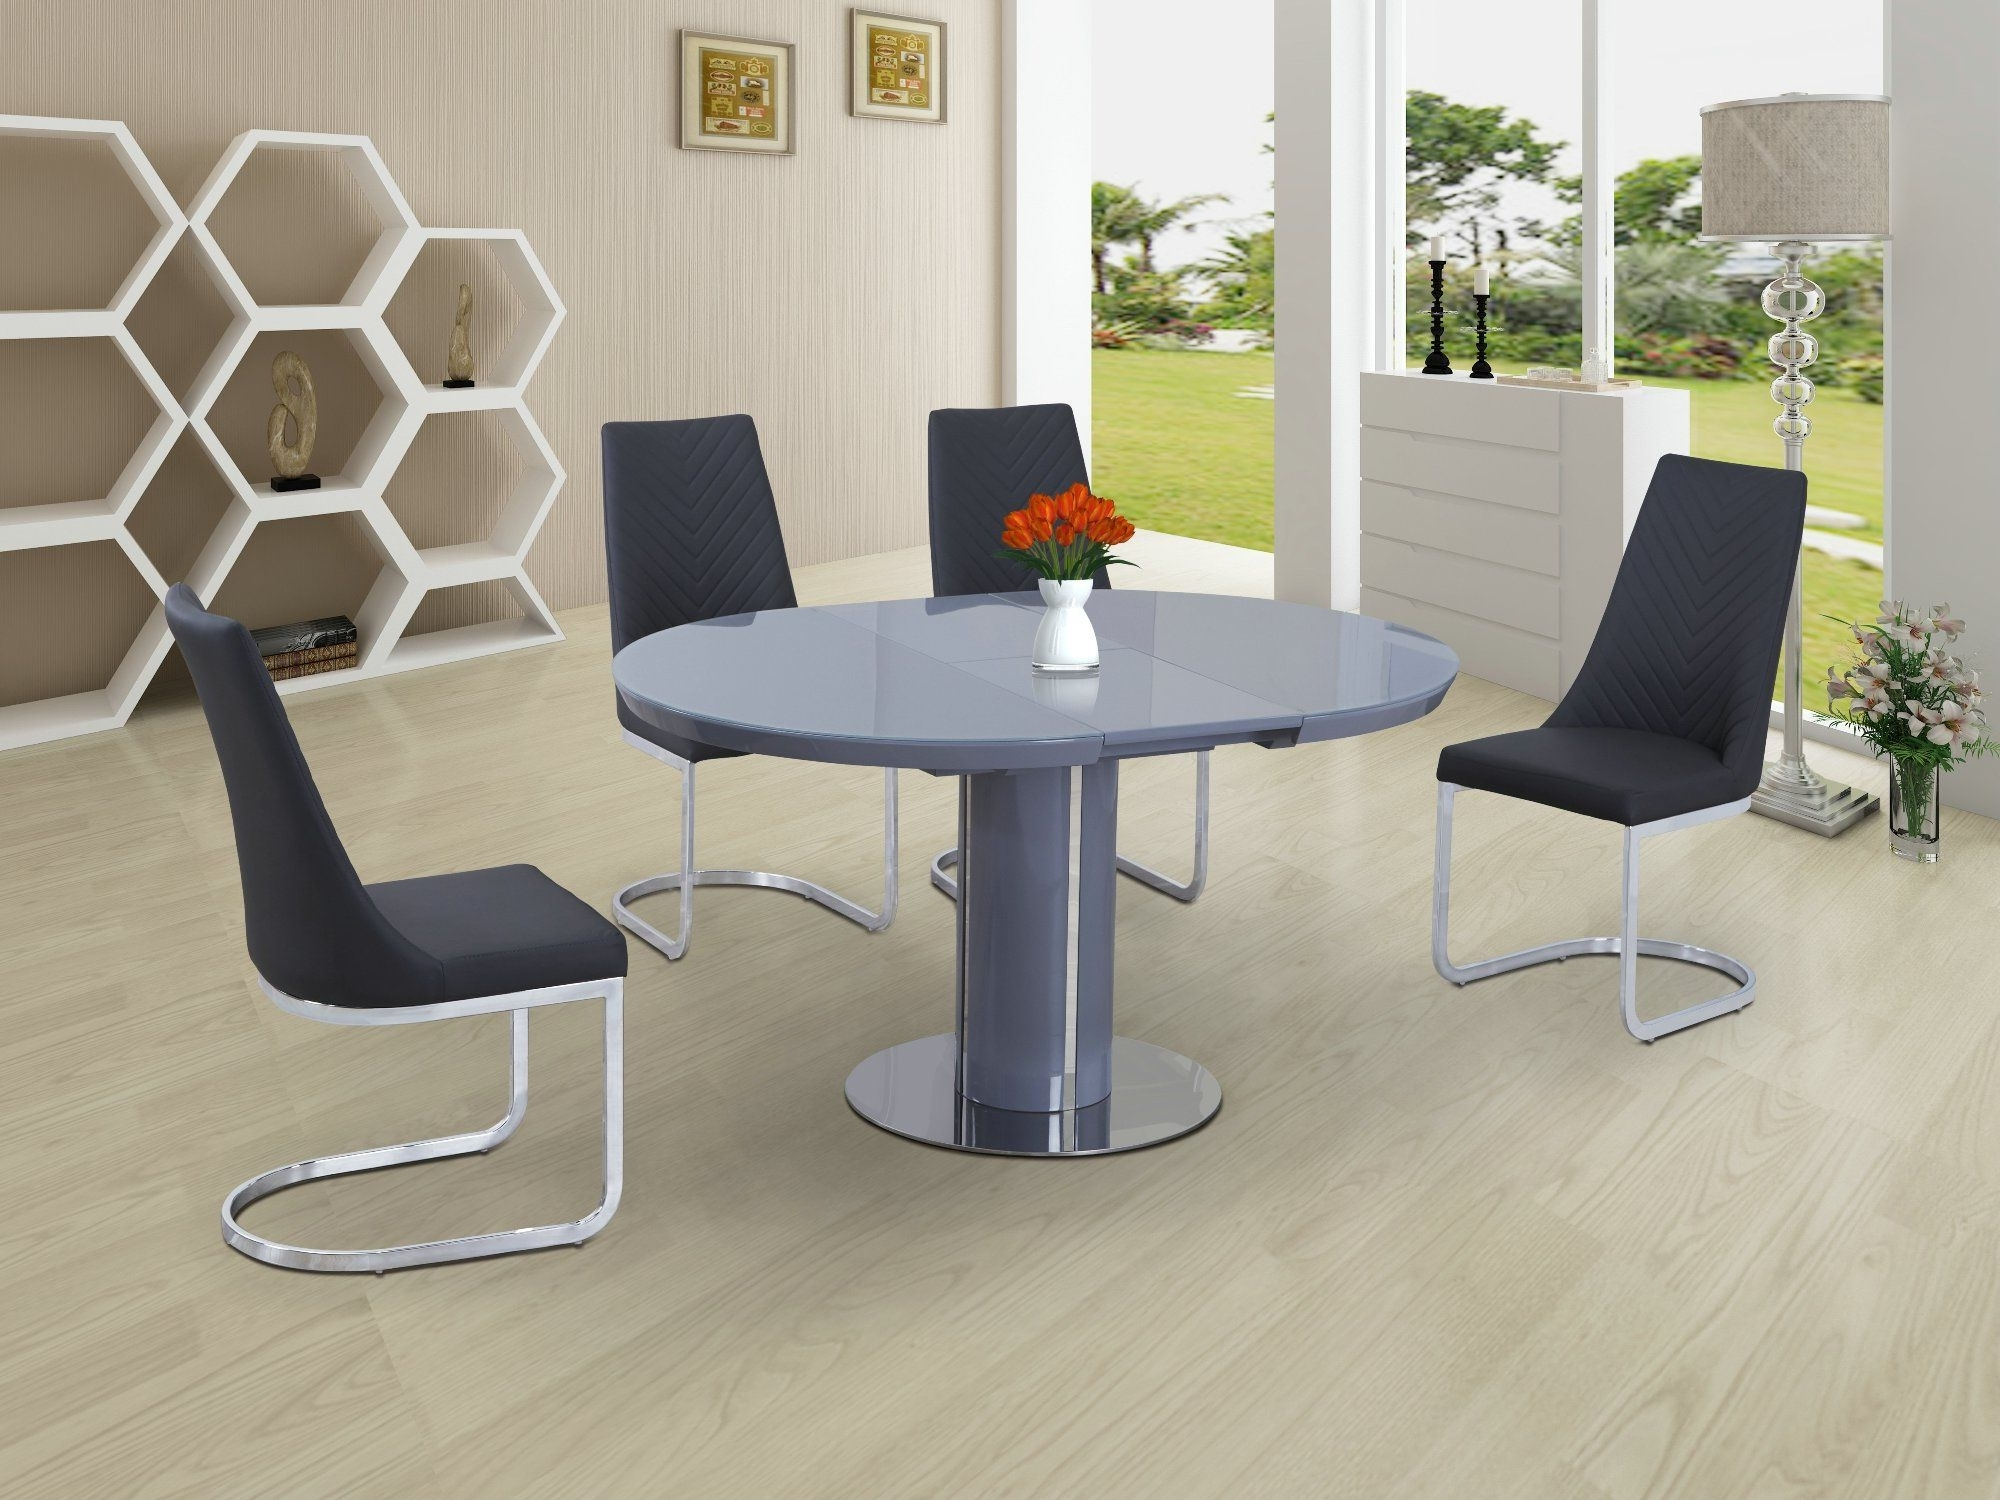 Most Popular Eclipse Round Oval Gloss & Glass Extending 110 To 145 Cm Dining Pertaining To Extending Gloss Dining Tables (View 8 of 25)